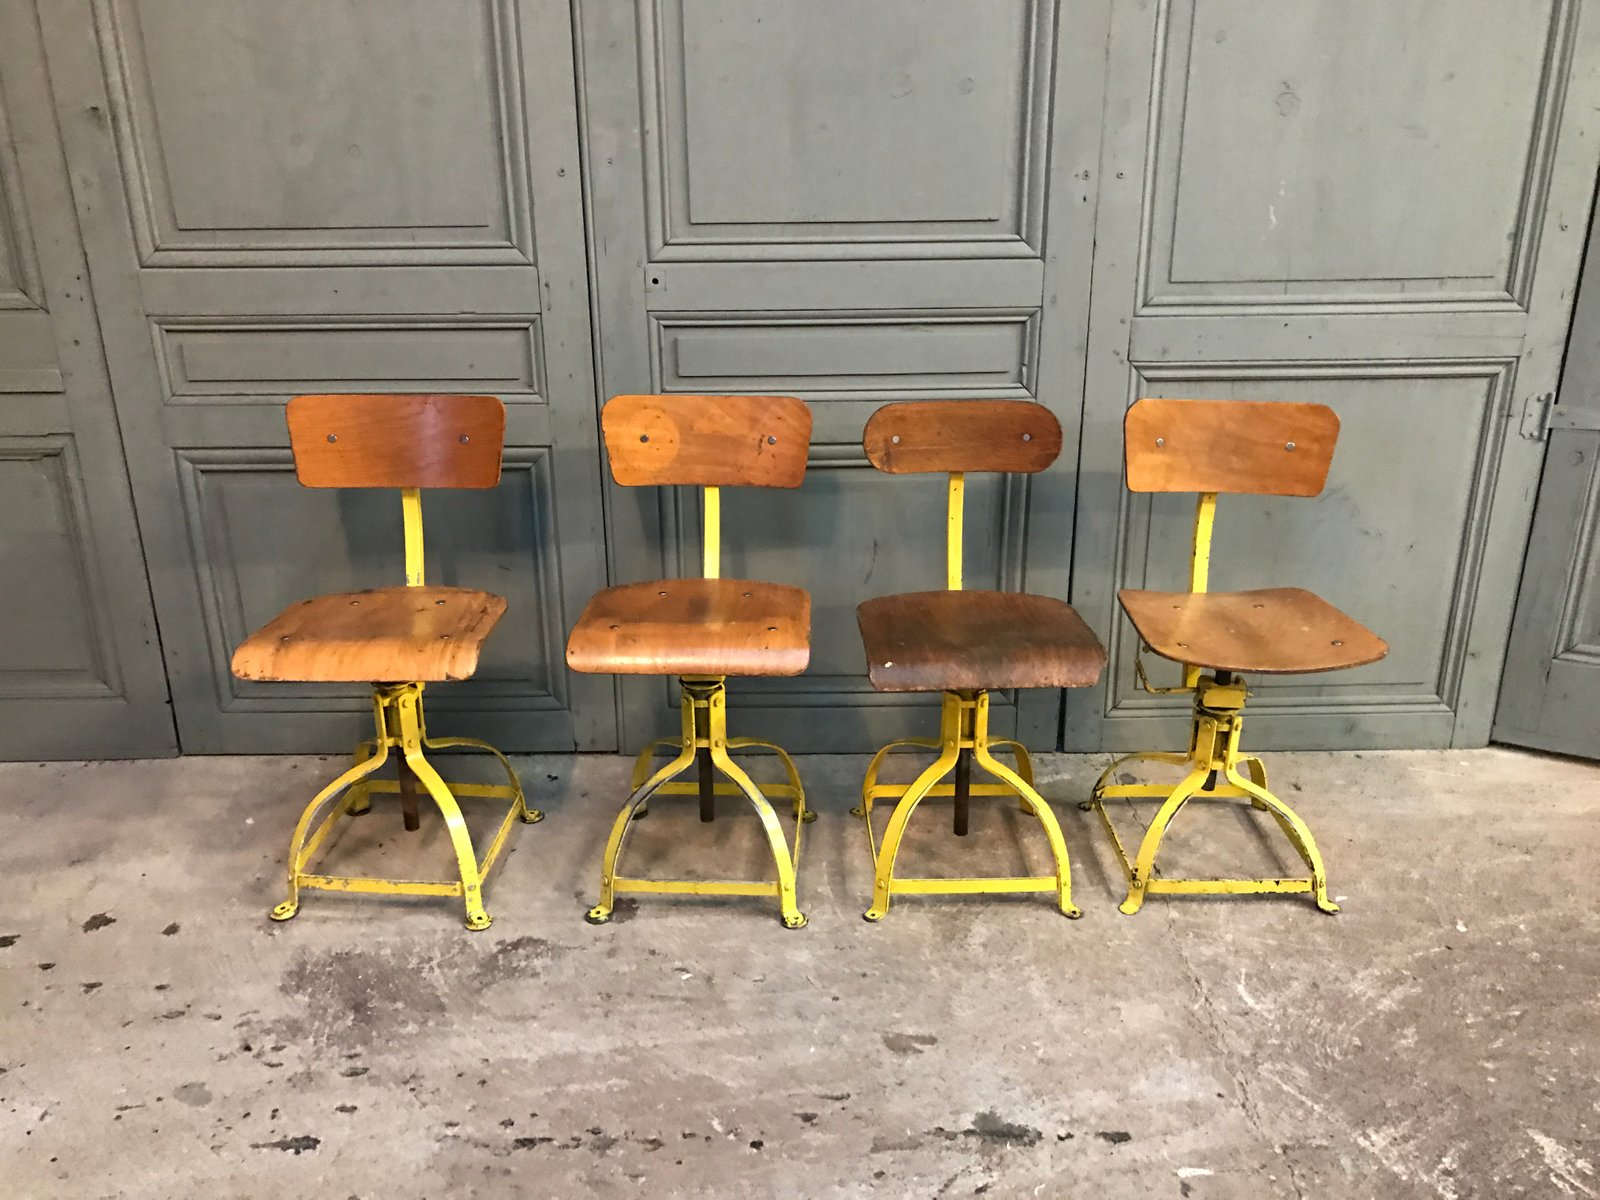 Vintage Desk Chairs from Atelier Bienaise Set of 4 for sale at Pamono